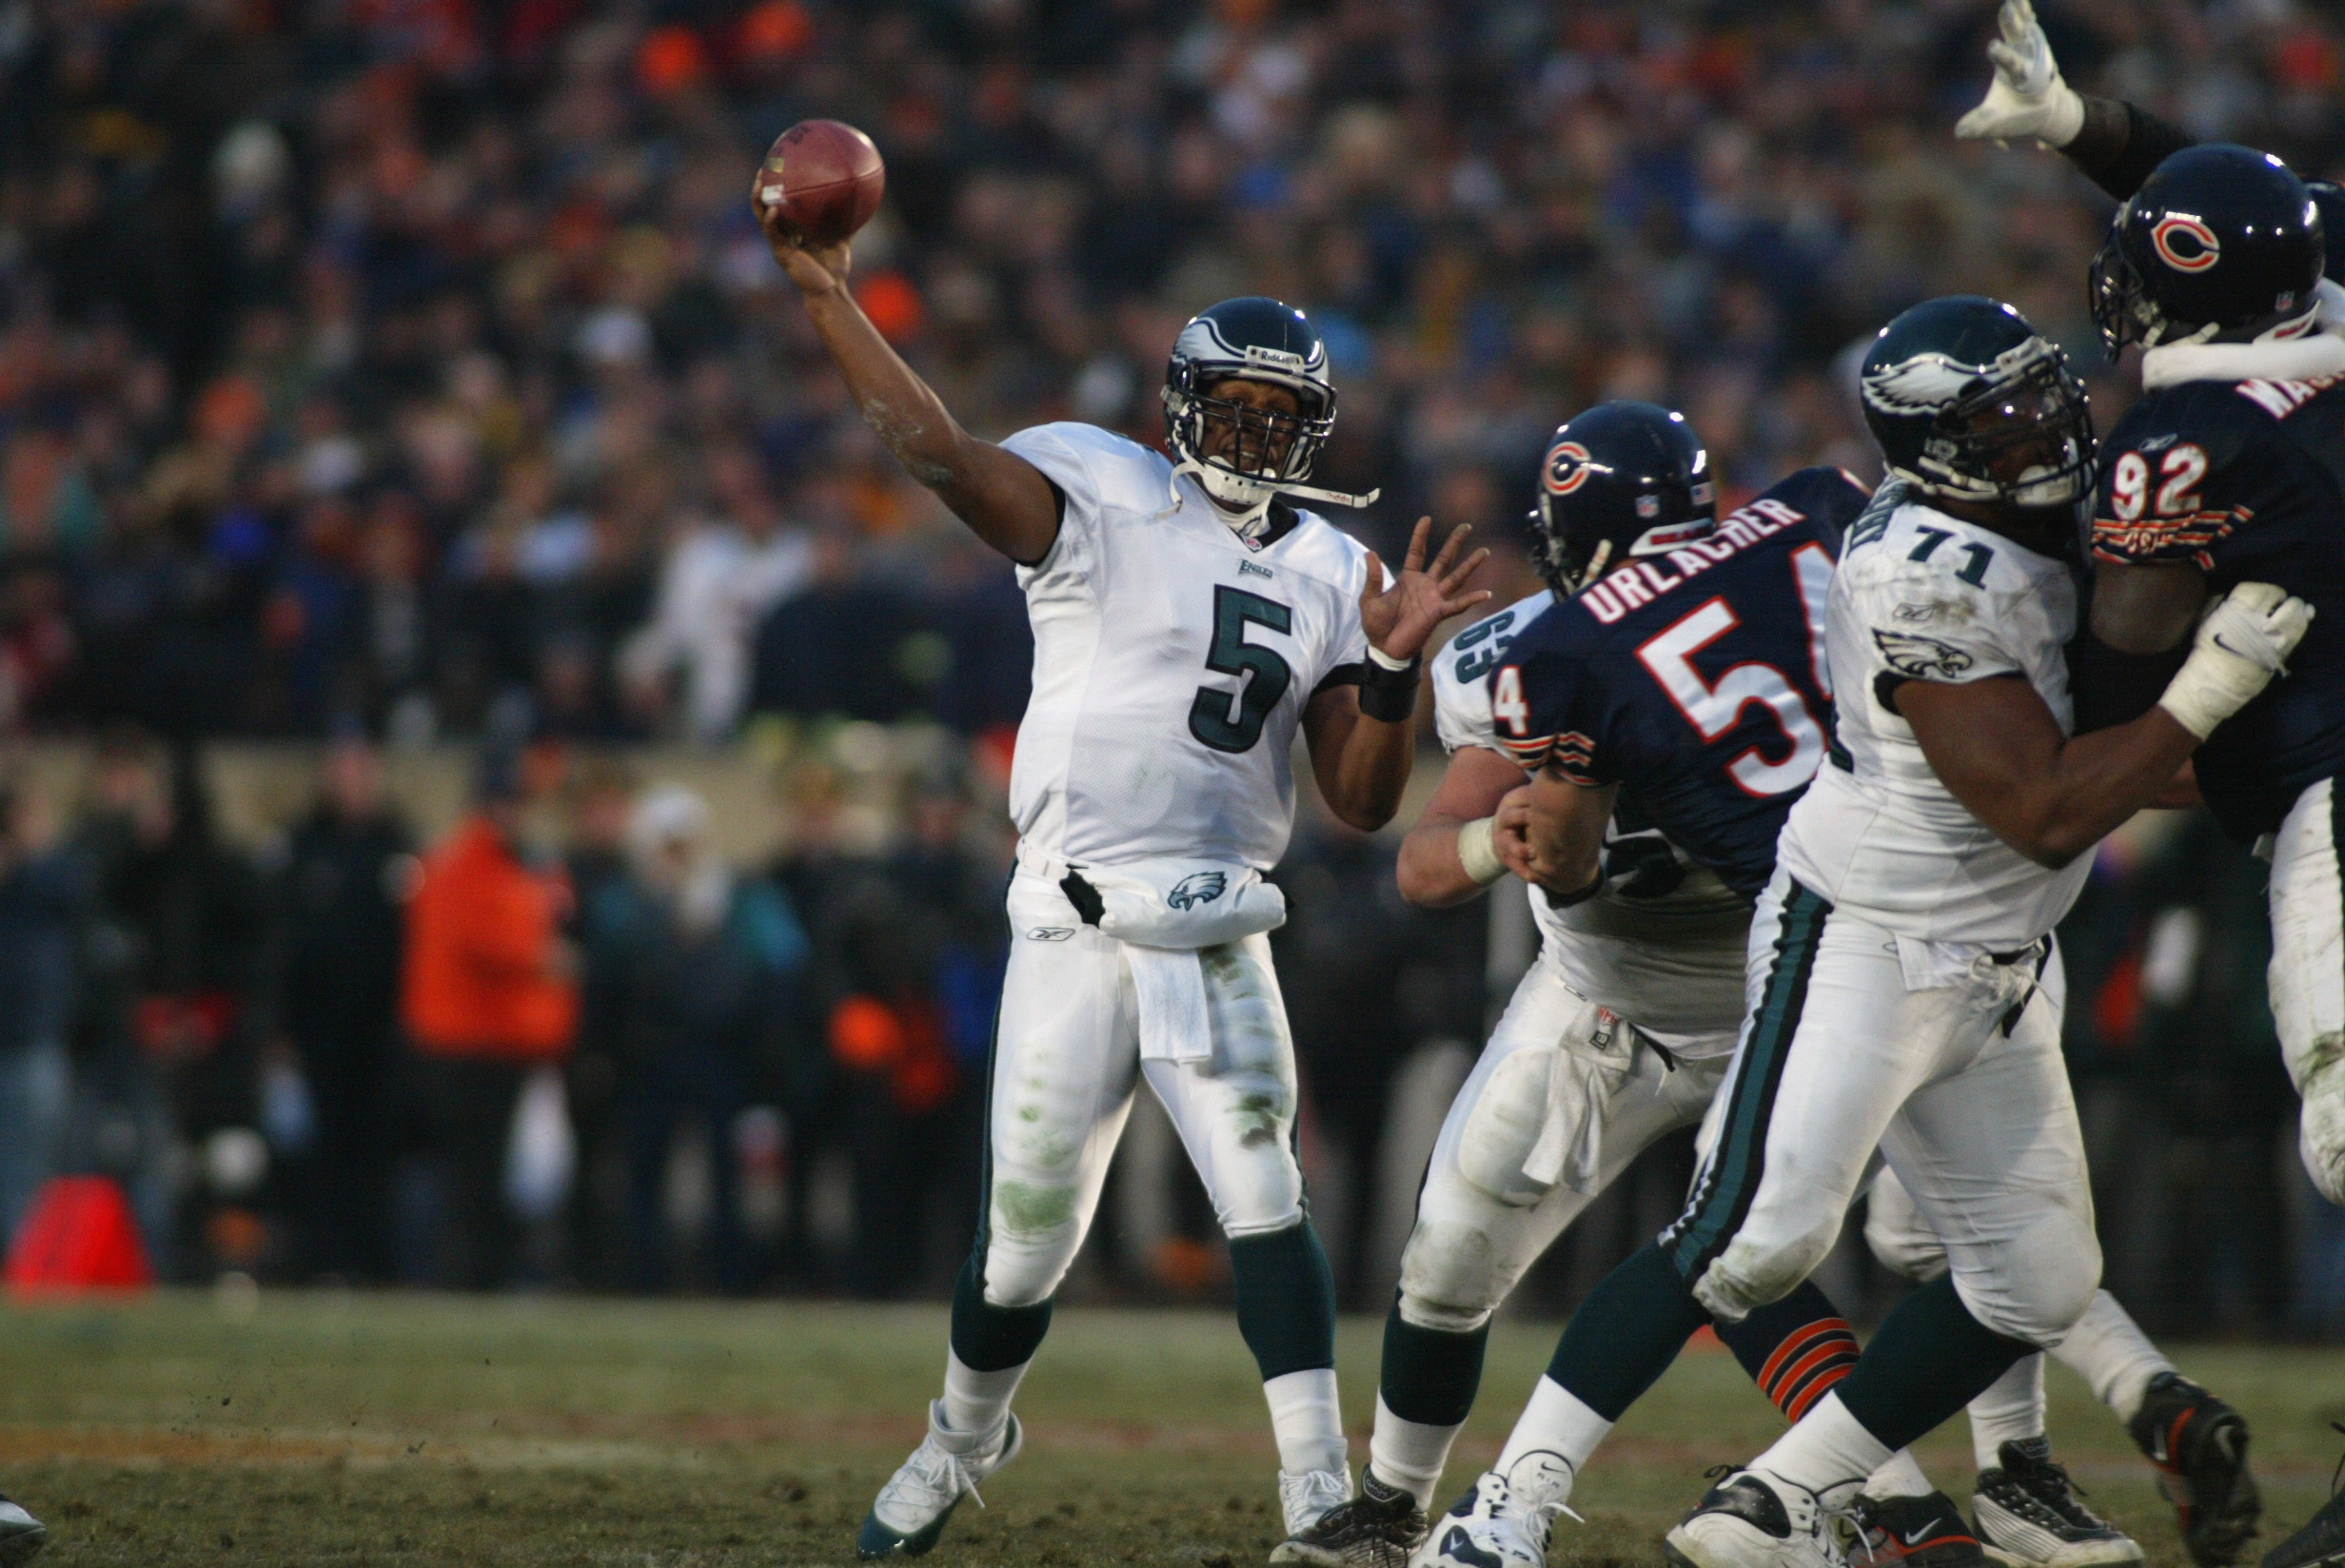 19 Jan 2002:  Quarterback Donovan McNabb #5  of the Philadelphia Eagles delivers a pass against the defense of Brian Urlacher #54 of the Chicago Bears during the NFC Divisional Playoff at Soldier Field in Chicago, Illinois. Eagles win 33-19 over the Bears